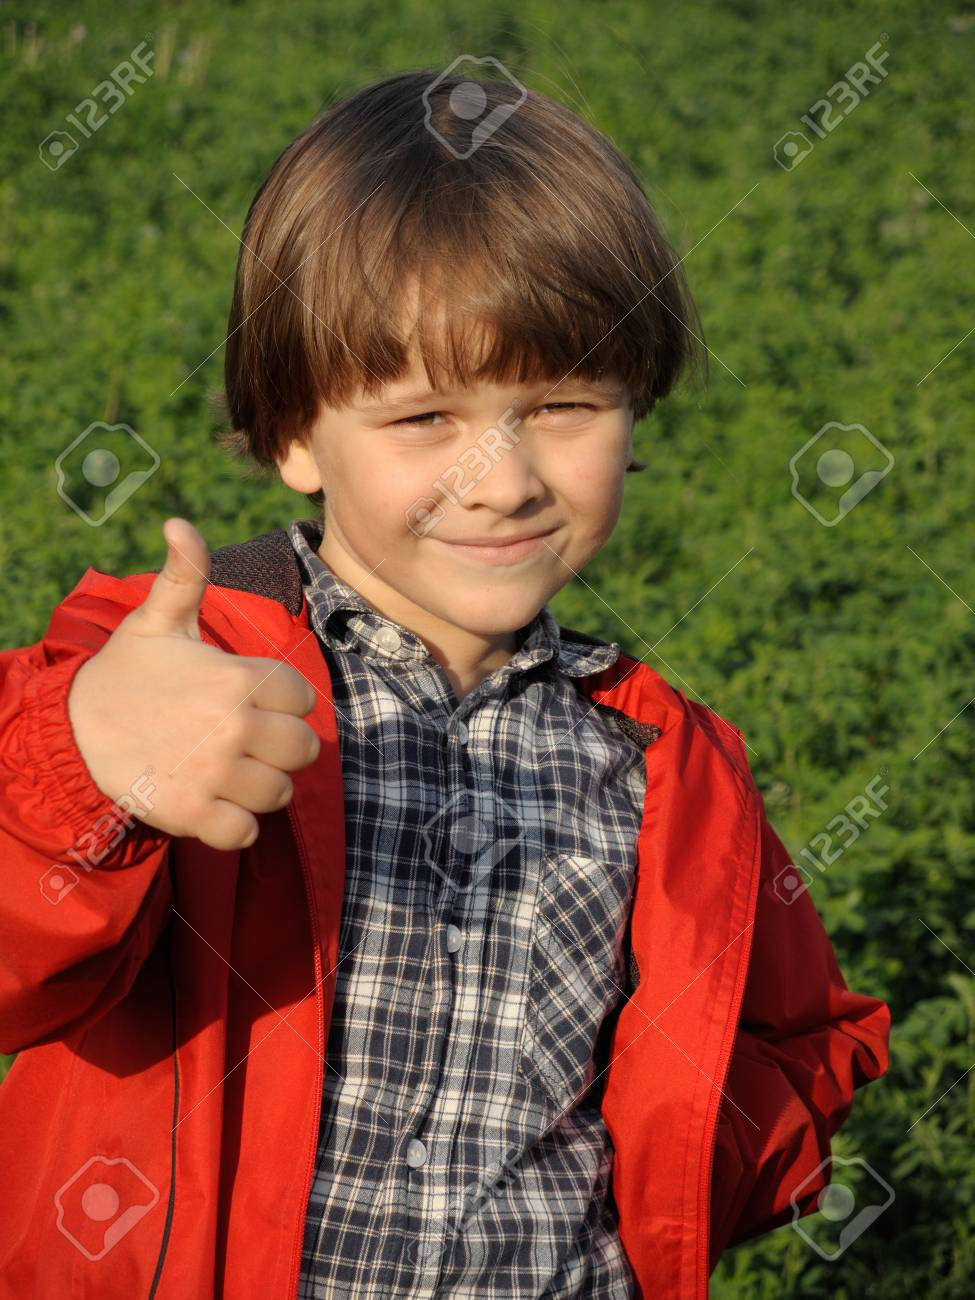 Portrait of a smiling young boy gesturing thumbs on the nature. Happiness, fashionable concept. Lifestyle. - 43075985